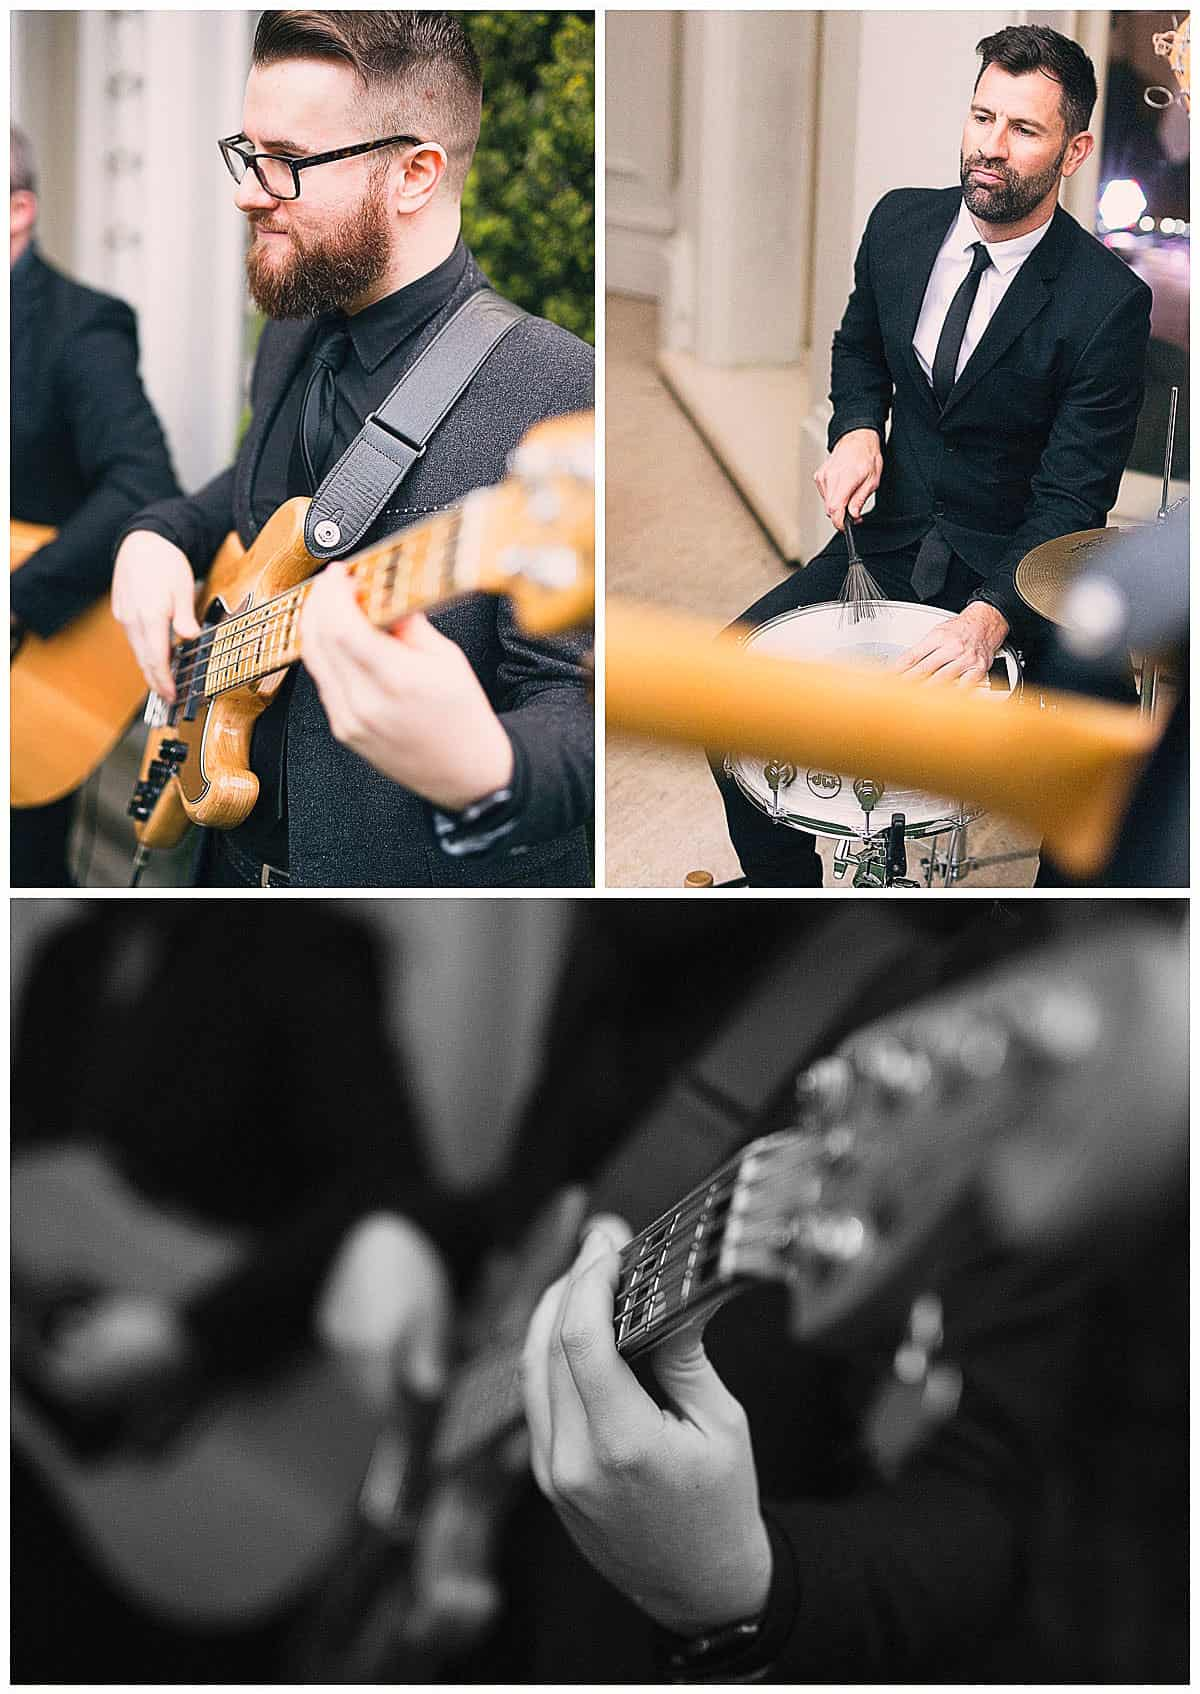 Hacking Creative Wedding Photography - The Baker Boys Wedding Band